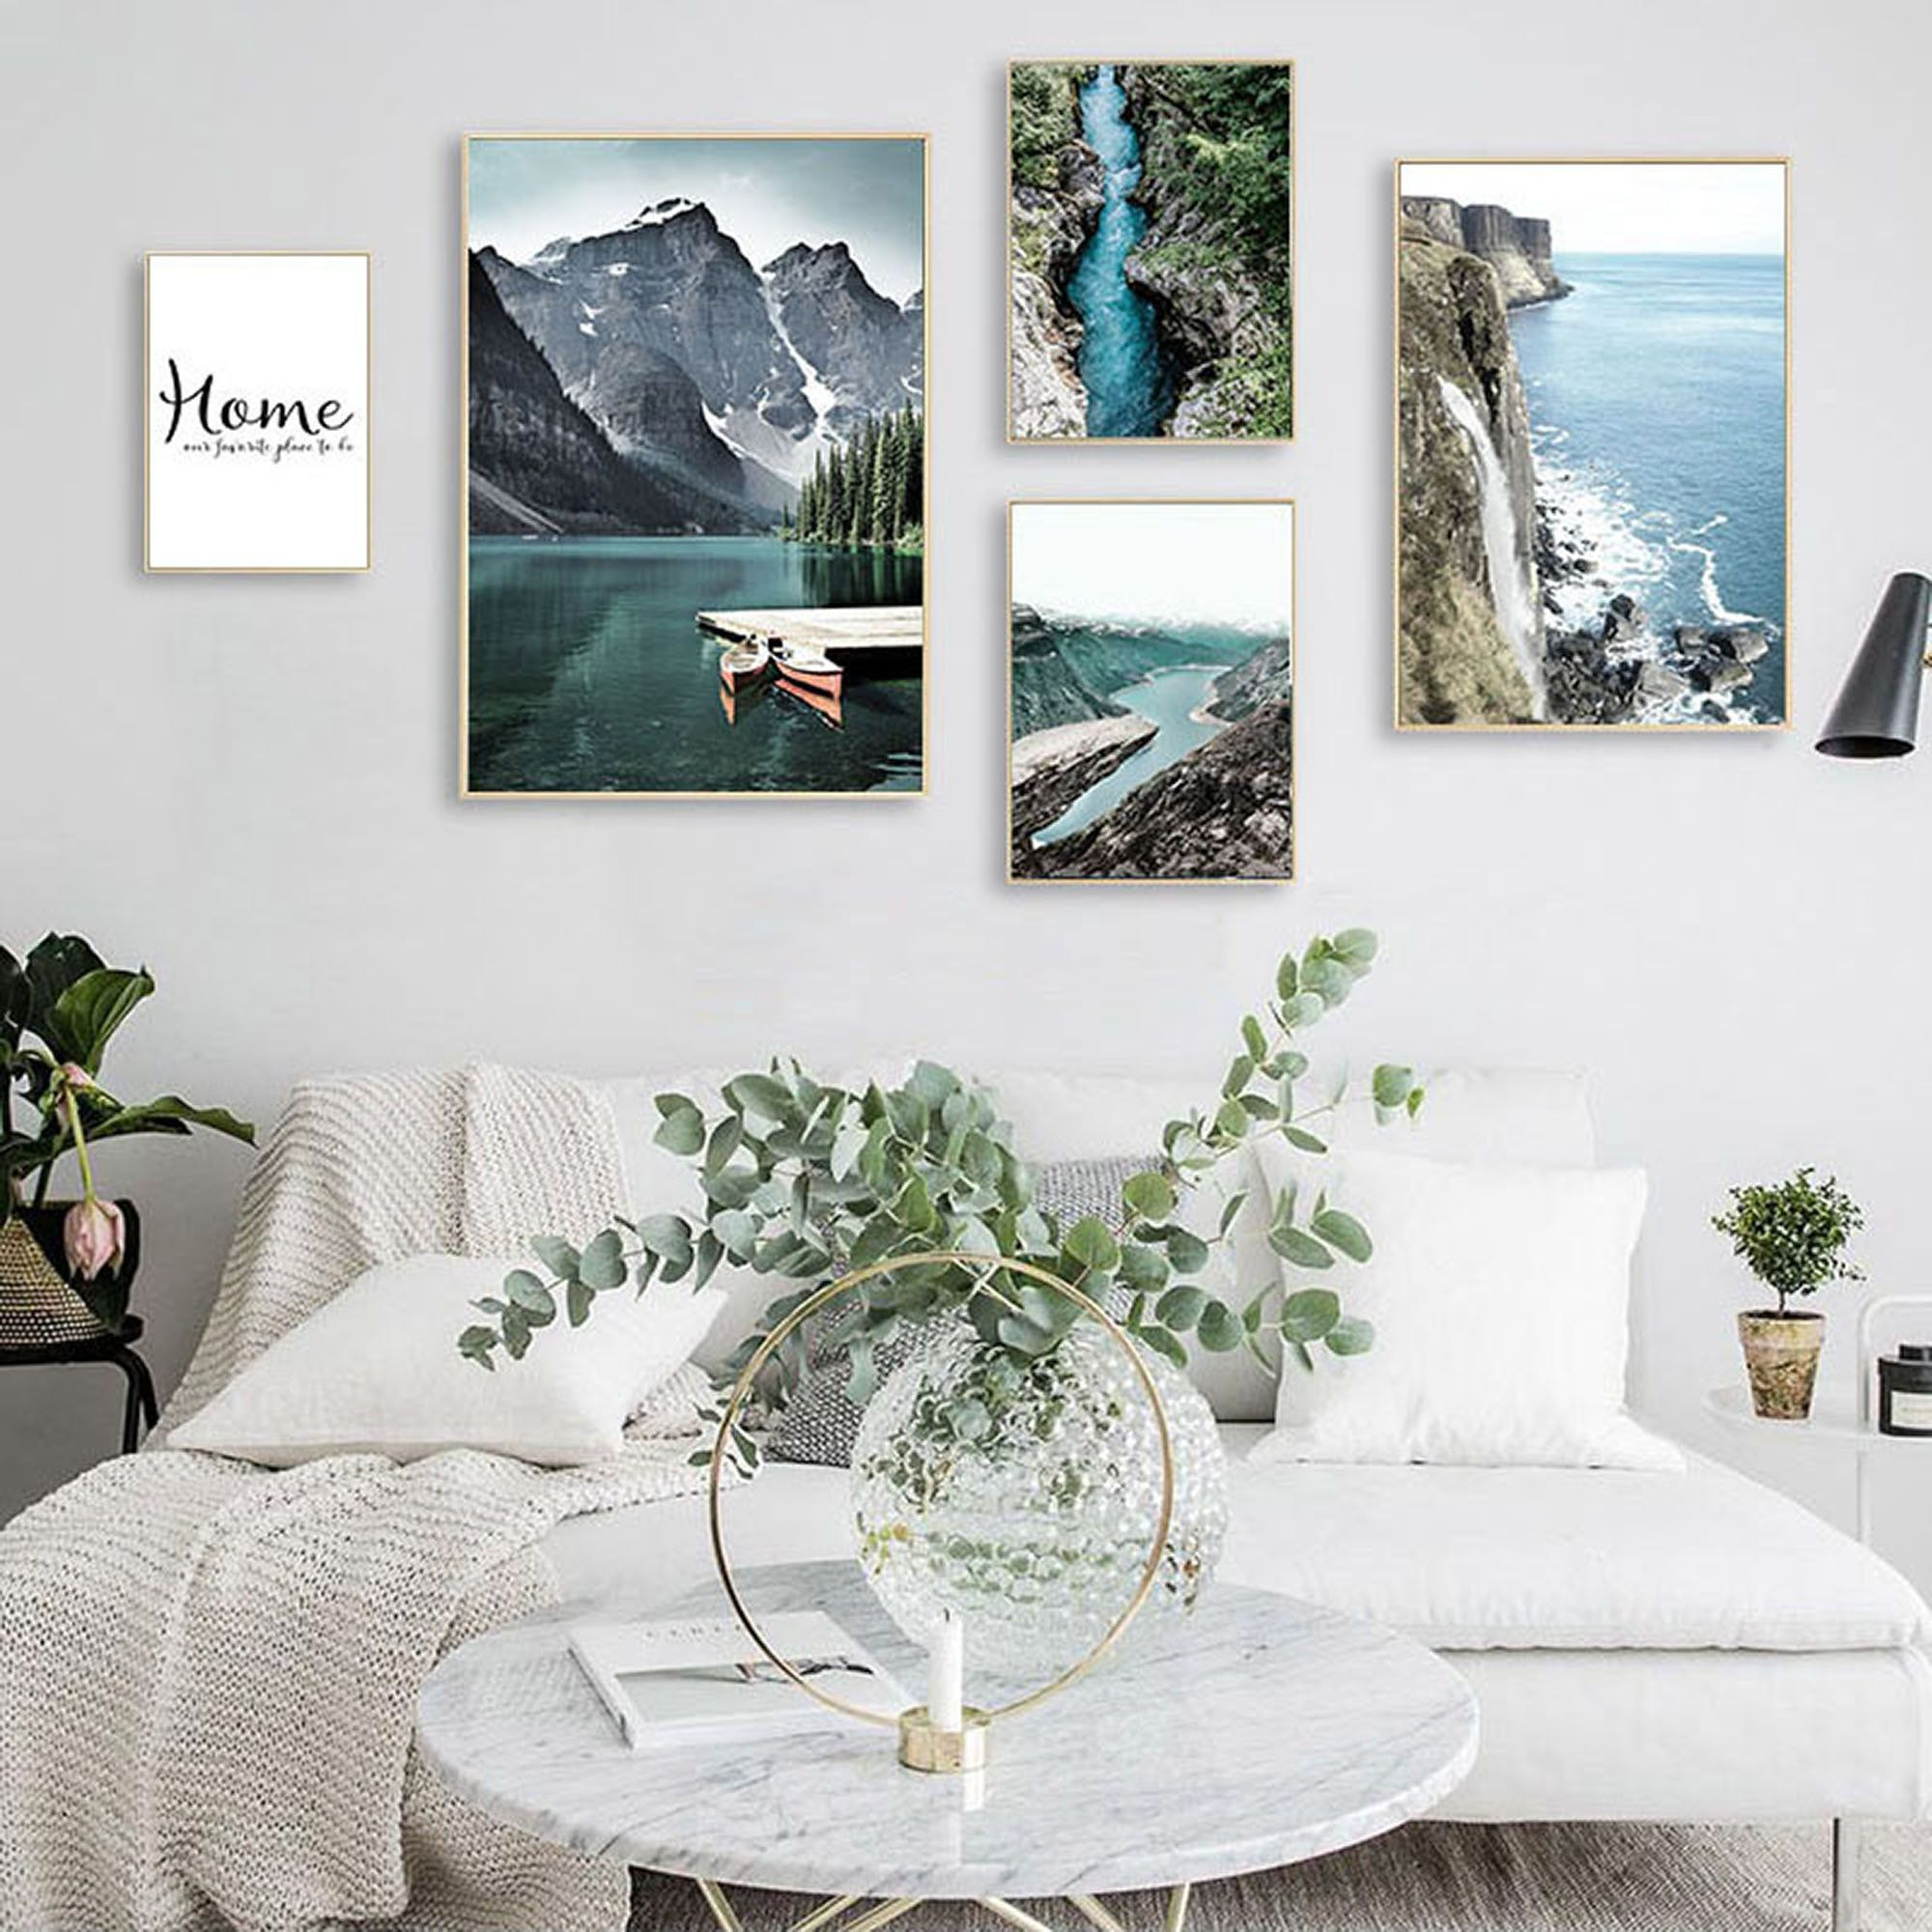 Mountain Lake Waterfall Picture, Nature Nordic Style, Botanical Painting,Nordic Wall Art,Housewarming Gift, Scandinavian Home Decor#arthousewarming #botanical #decor #gift #home #lake #mountain #nature #nordic #paintingnordic #picture #scandinavian #style #wall #waterfall